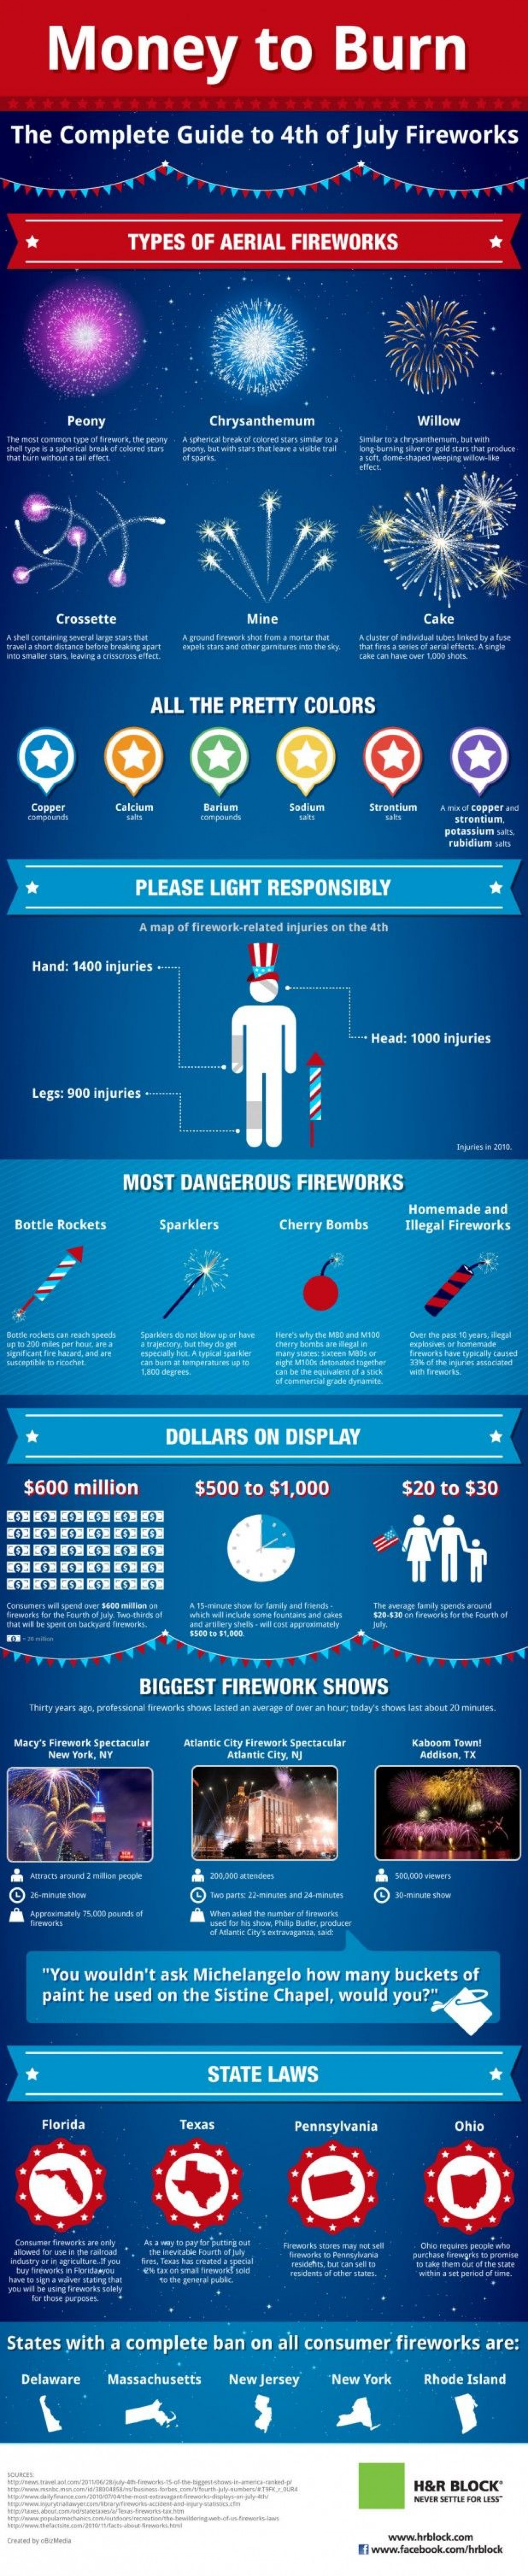 Types of aerial fireworks Infographic